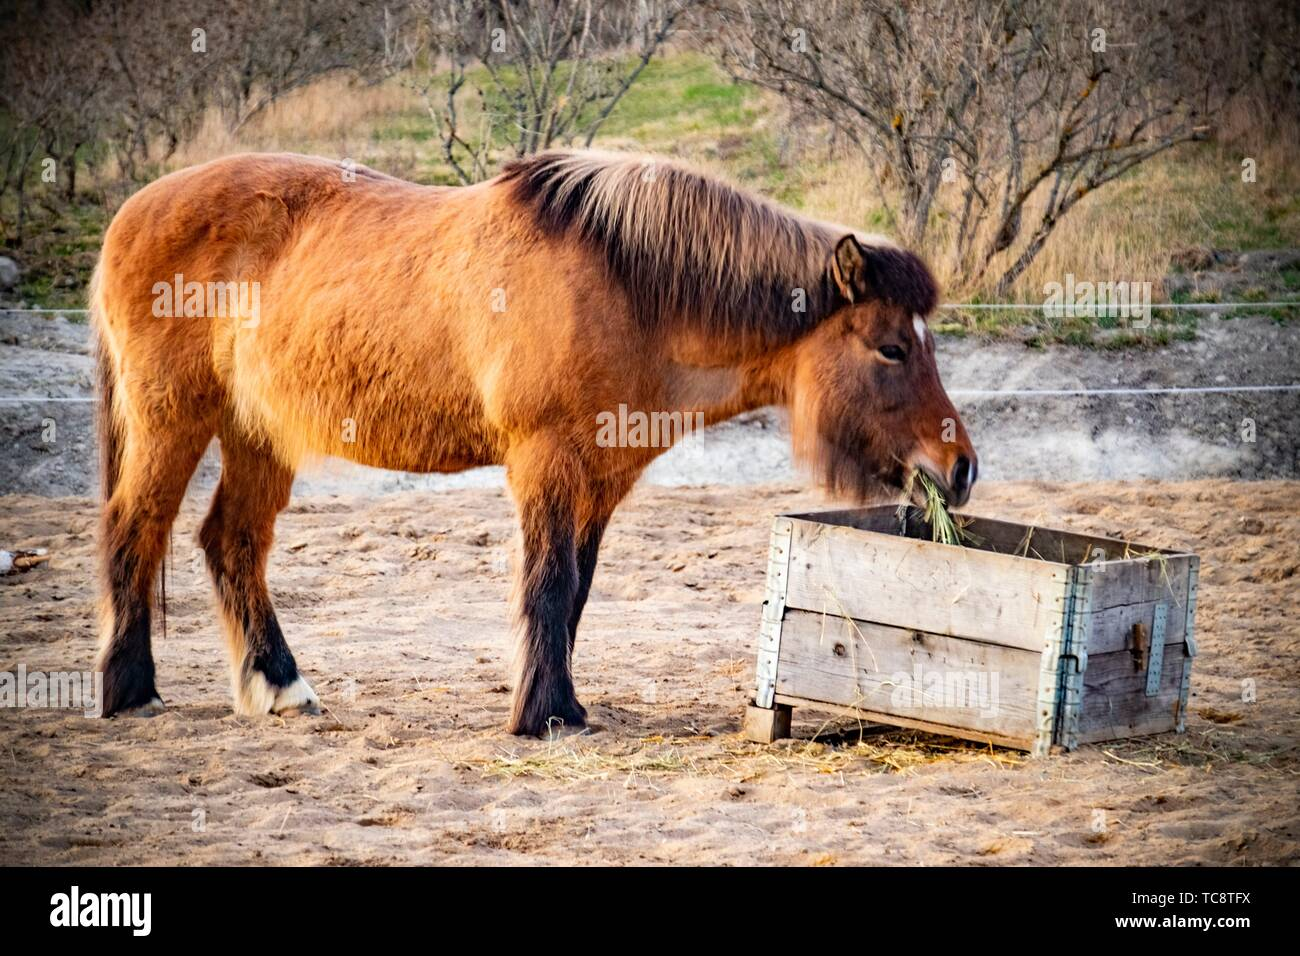 Horse eating hay in Sweden. - Stock Image